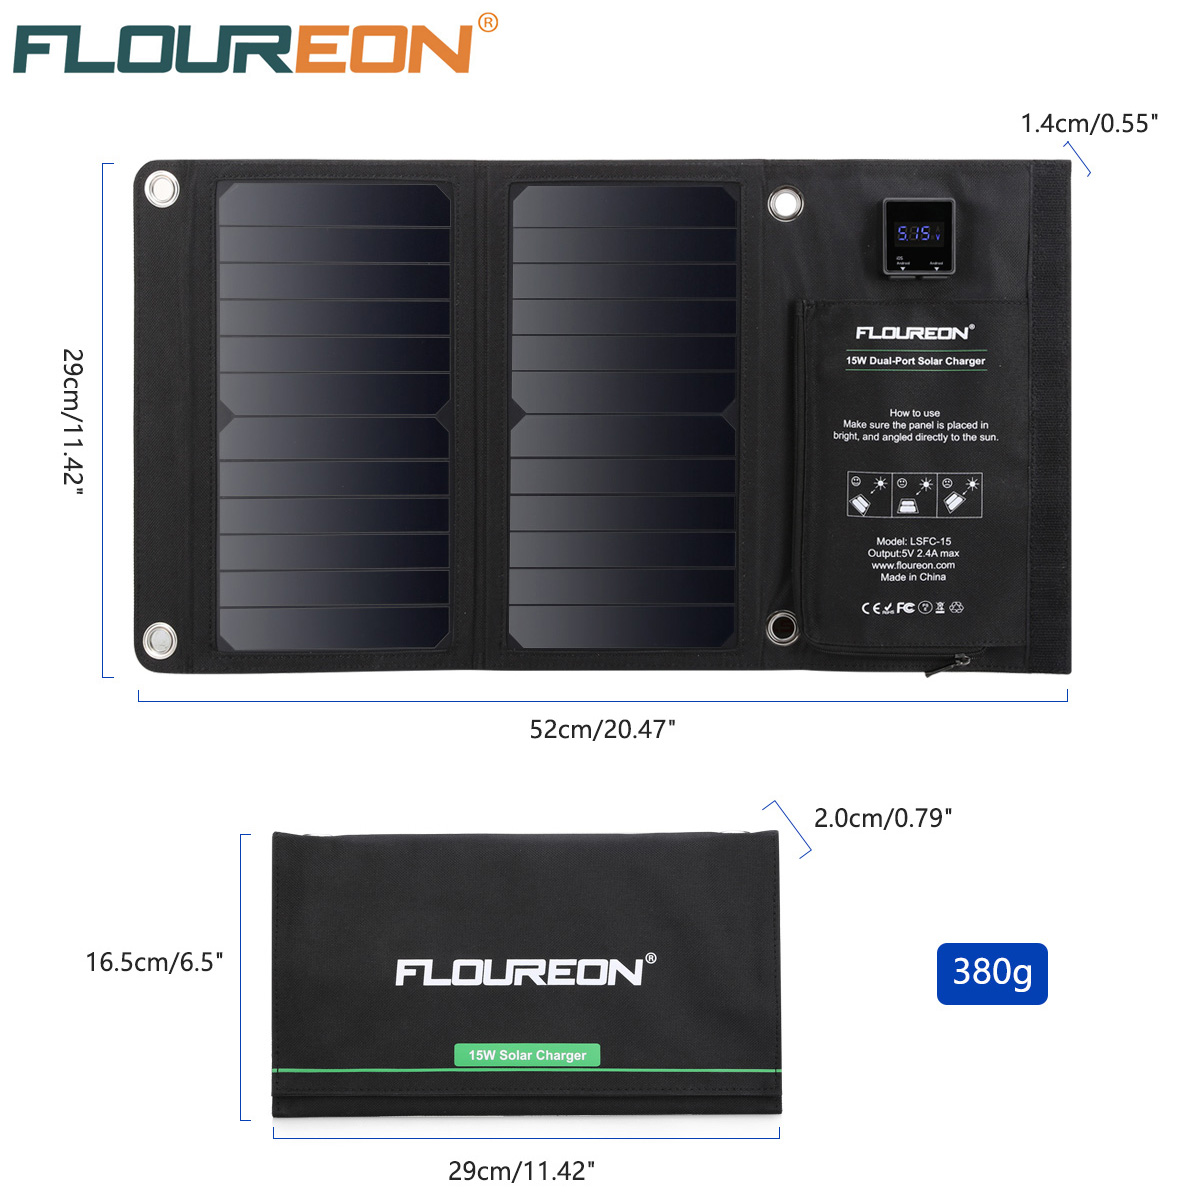 FLOUREON 15W Waterproof Built-in Ammeter Solar Panel Charger Mobile Power Bank for Smartphones Tablets Dual USB Ports Outdoor mvpower 5v 5w solar panel bank solar power panel usb charger usb for mobile smart phone